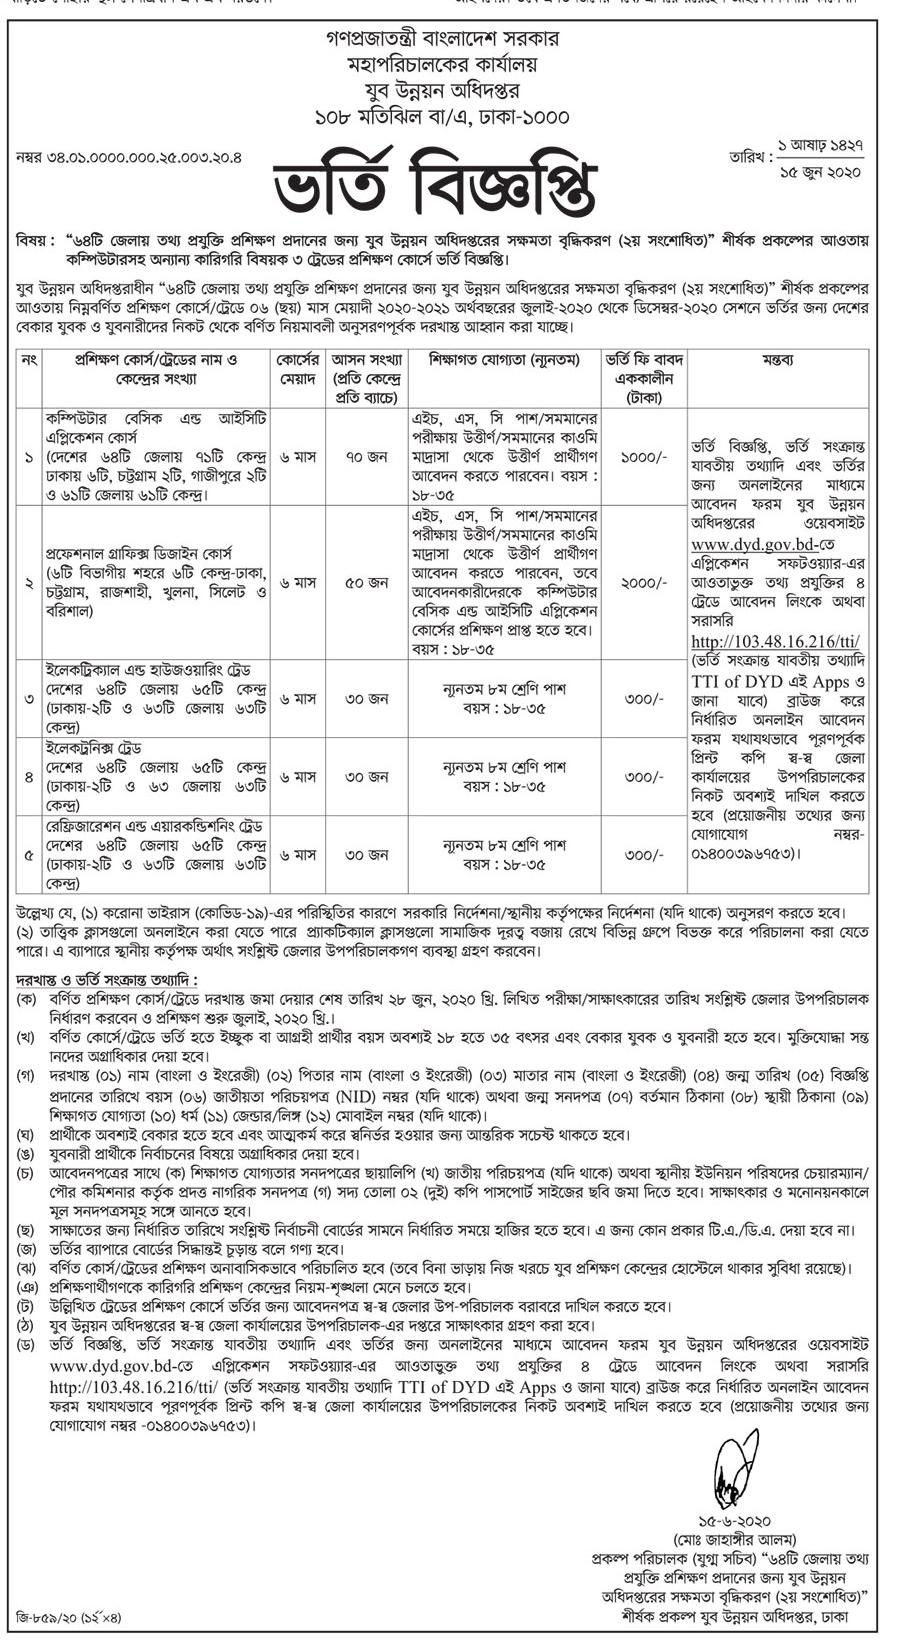 Department of Youth Development Technical Course Admission 2020